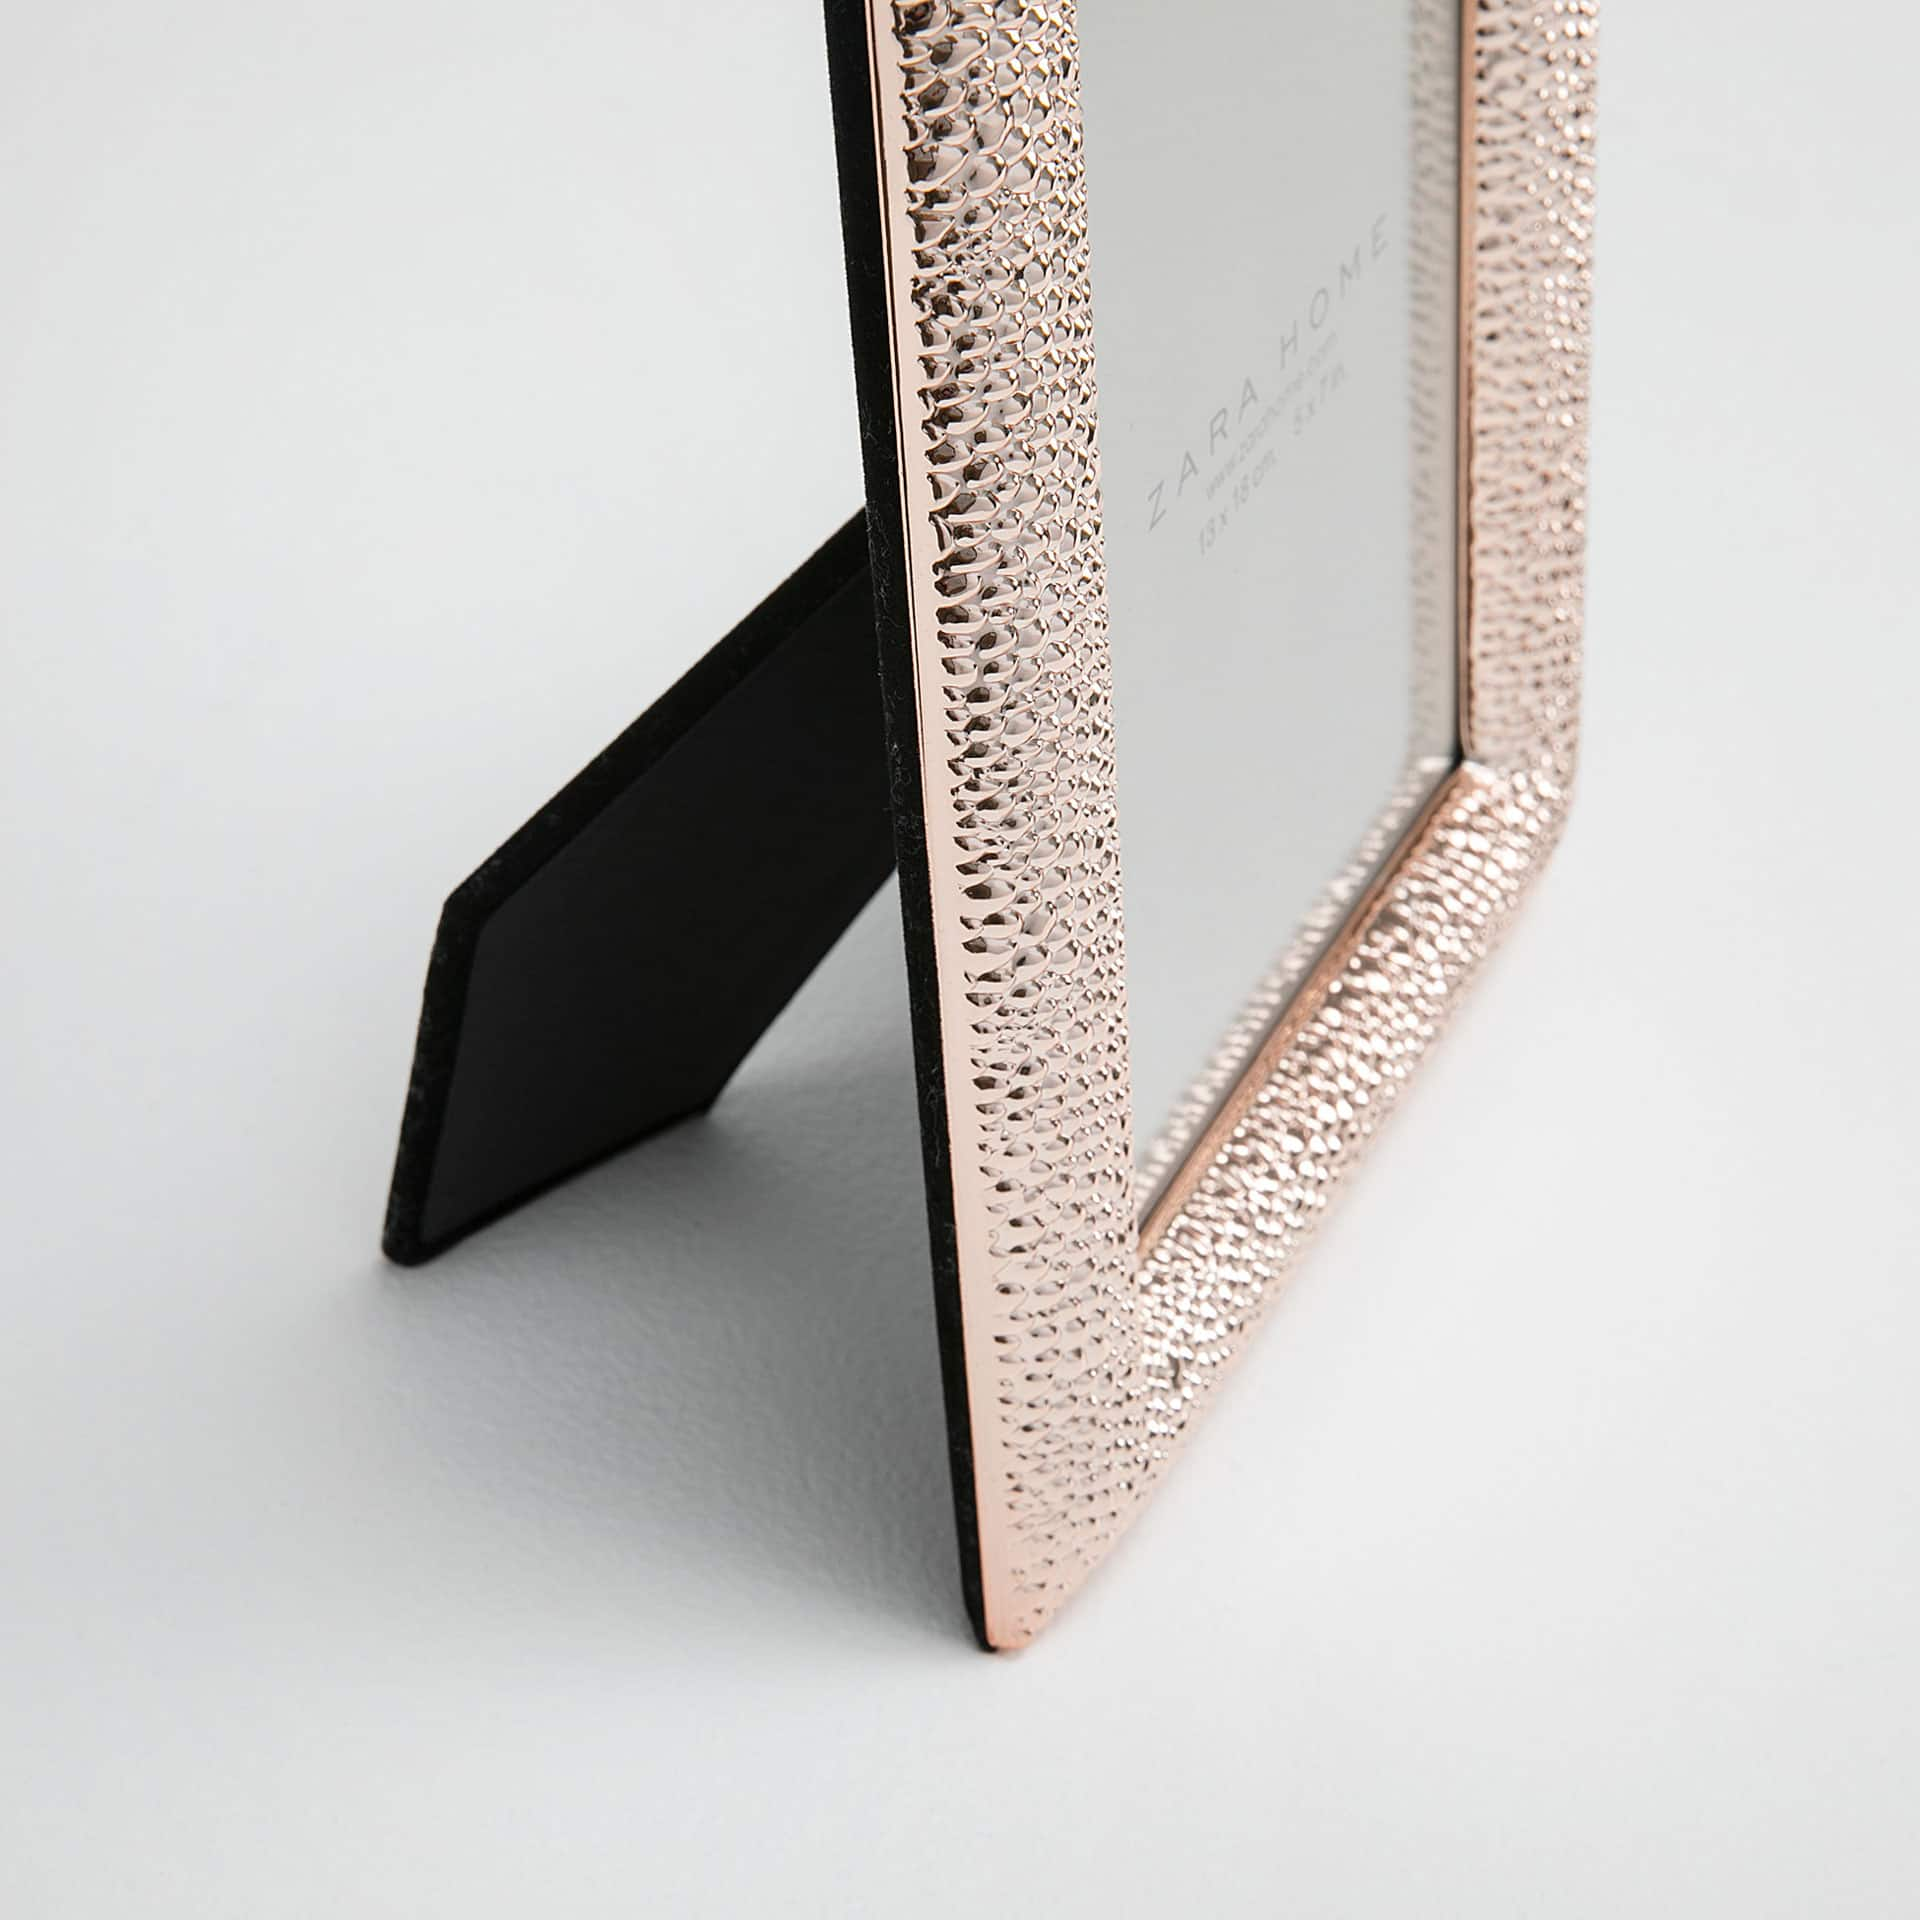 image 2 of the product rose gold hammered frame